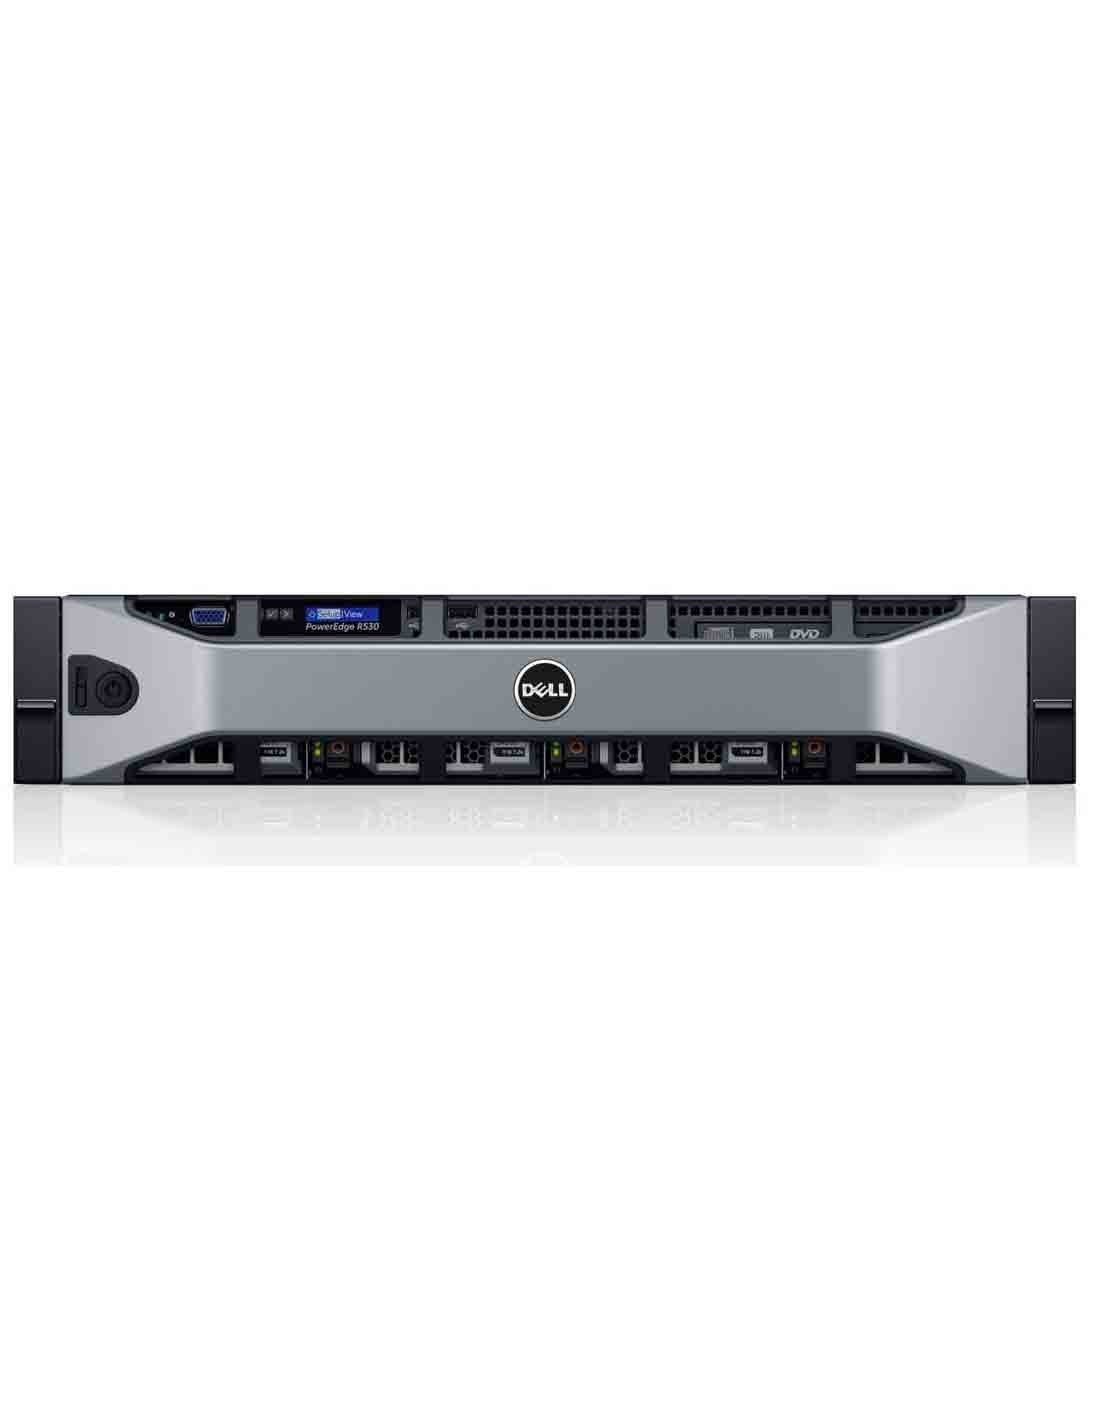 Dell PowerEdge R530 Rack Server Intel Xeon E5-2650v3 is ideal for small business.